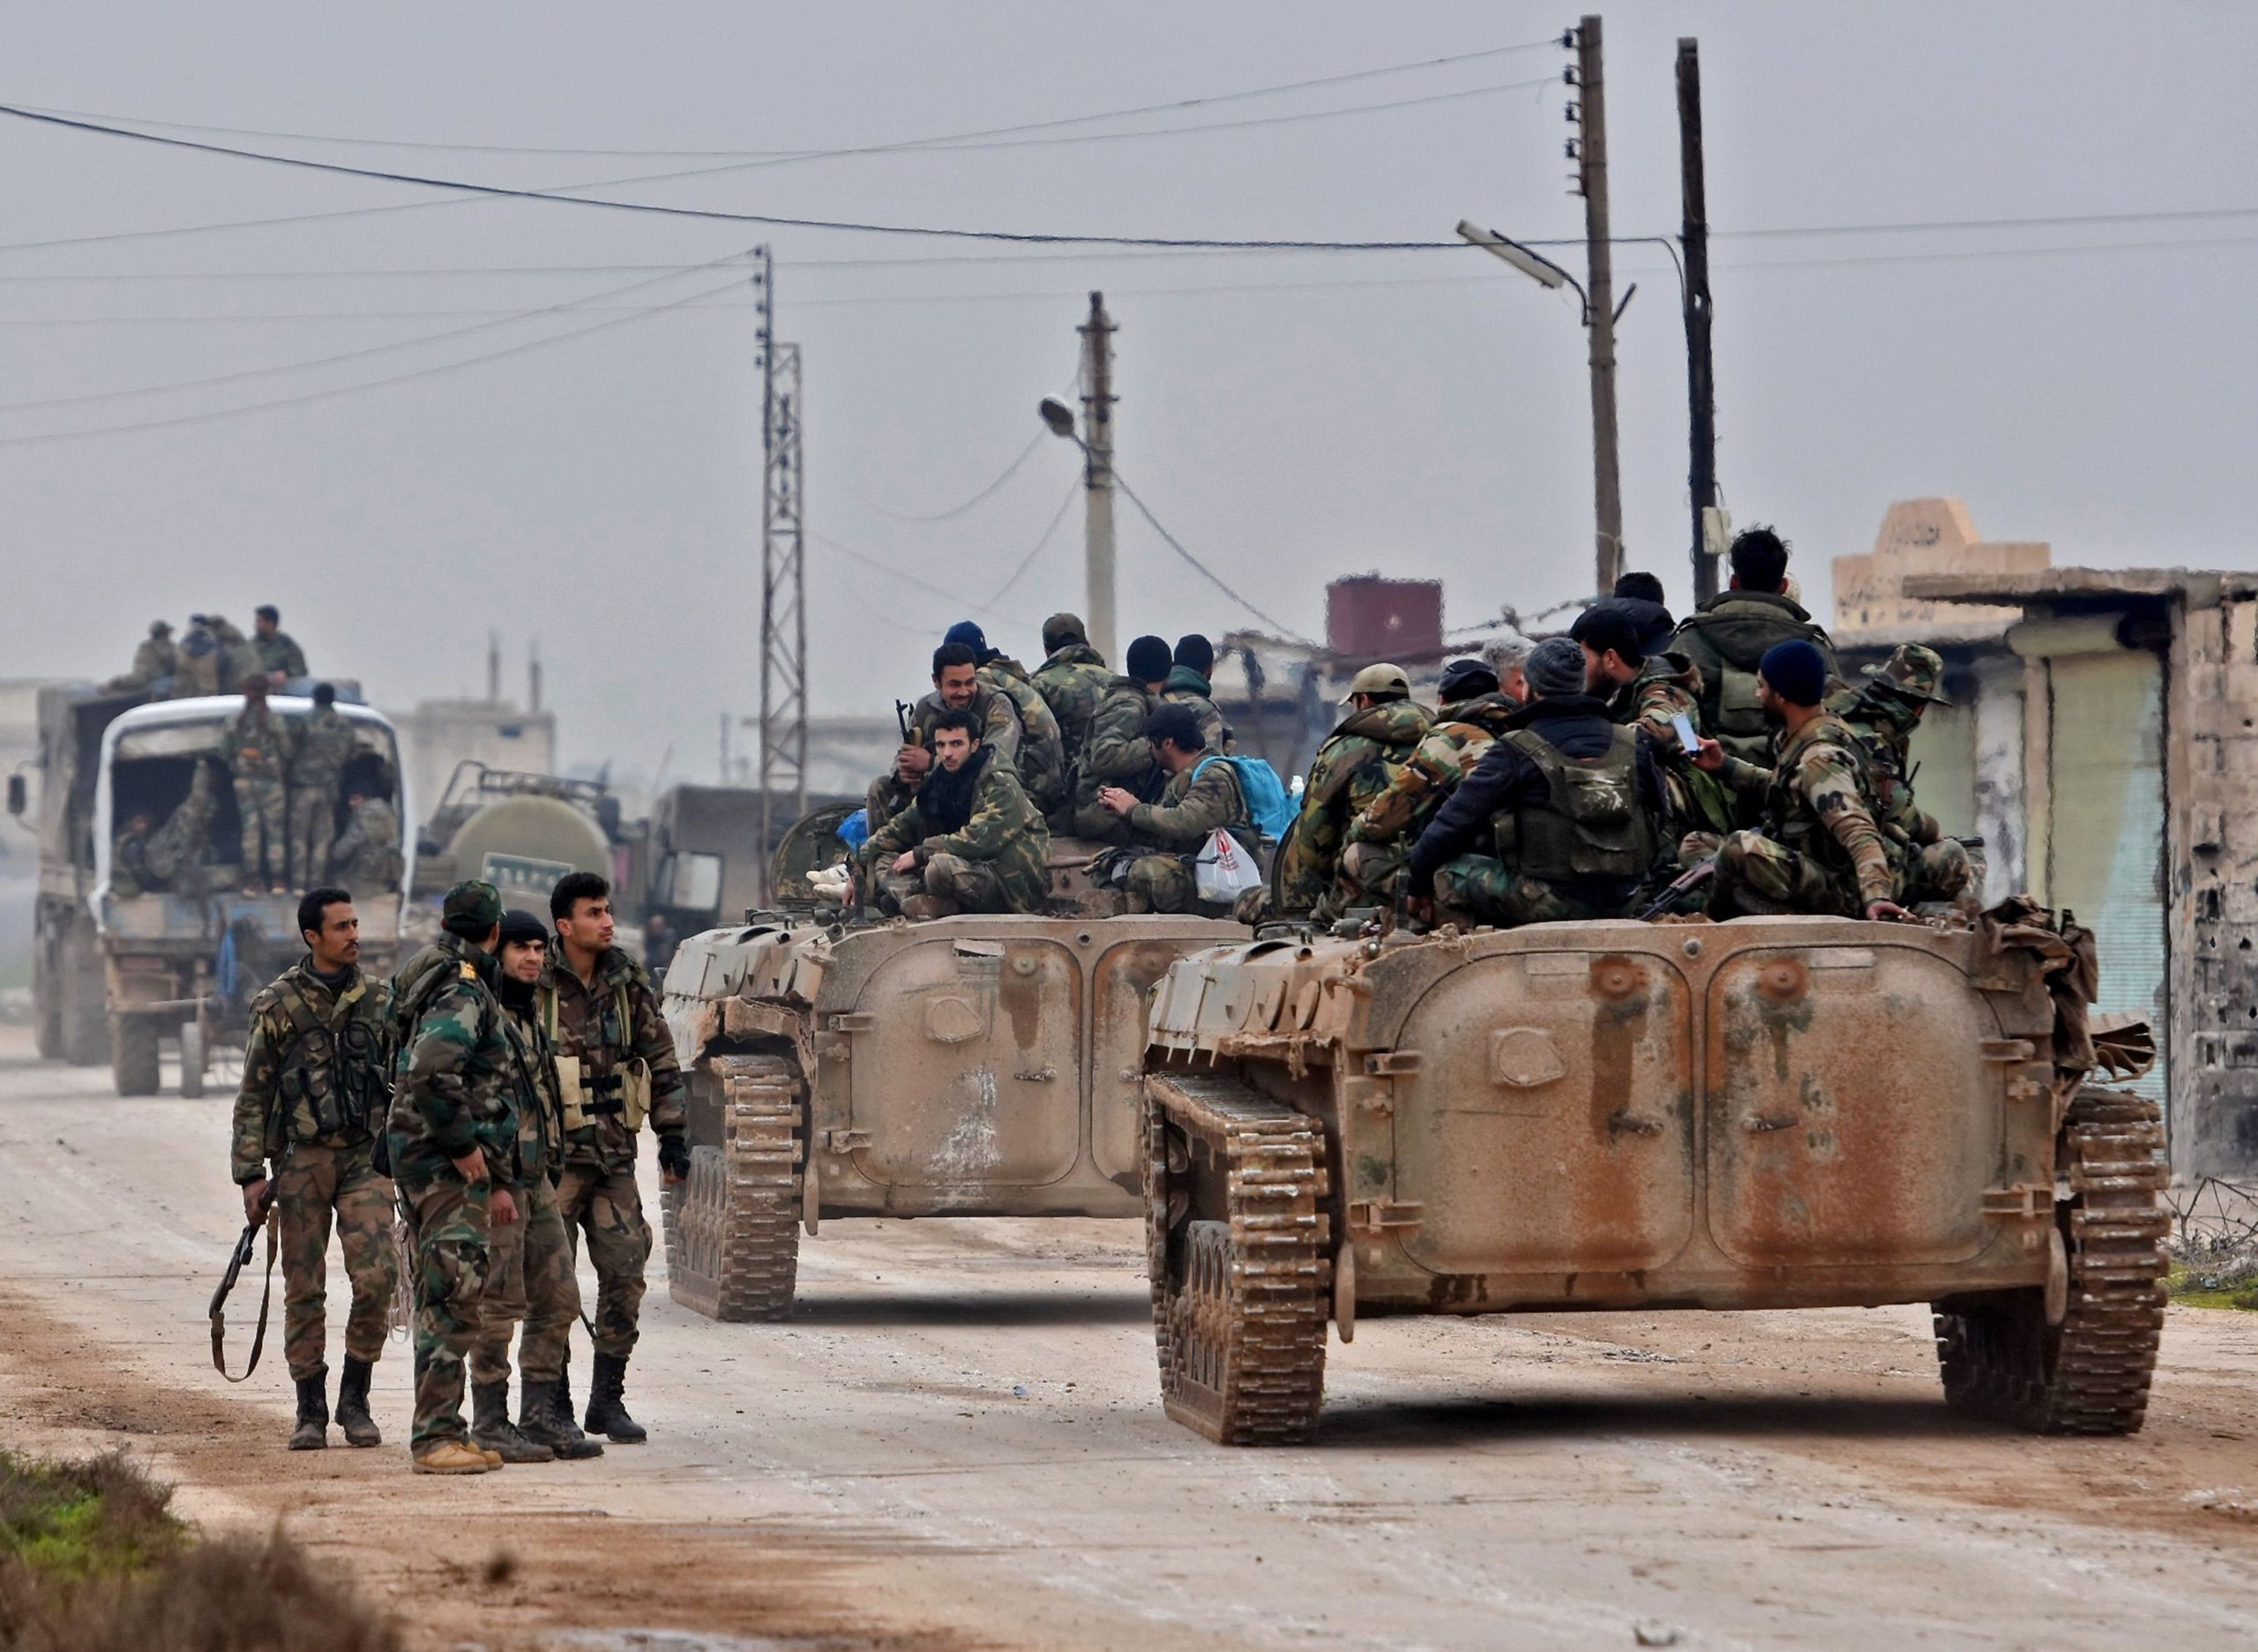 Al-Assad forces are preparing for a military campaign against ISIS in the countryside of Al-Raqqa